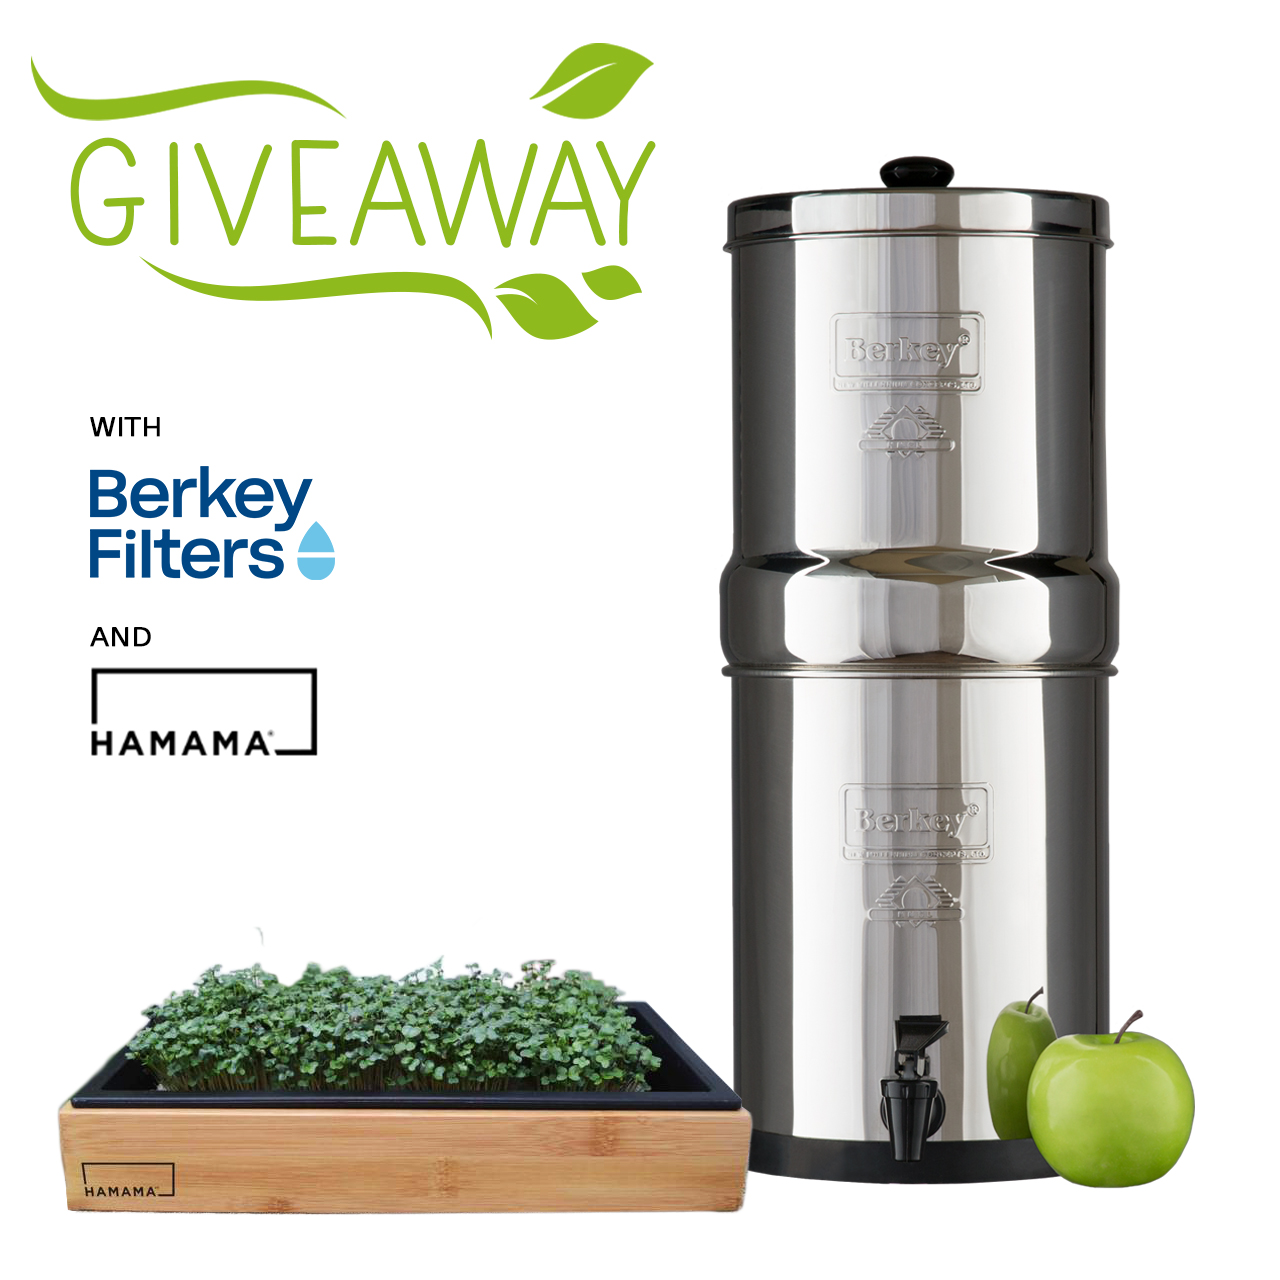 Enter into Travel Berkey & Hamama Micro Greens Giveaway for a chance to win Travel Berkey Water Filter System with two black filters, a Hamama grow kit & a Bamboo frame. Retails at $343! Giveaway Image